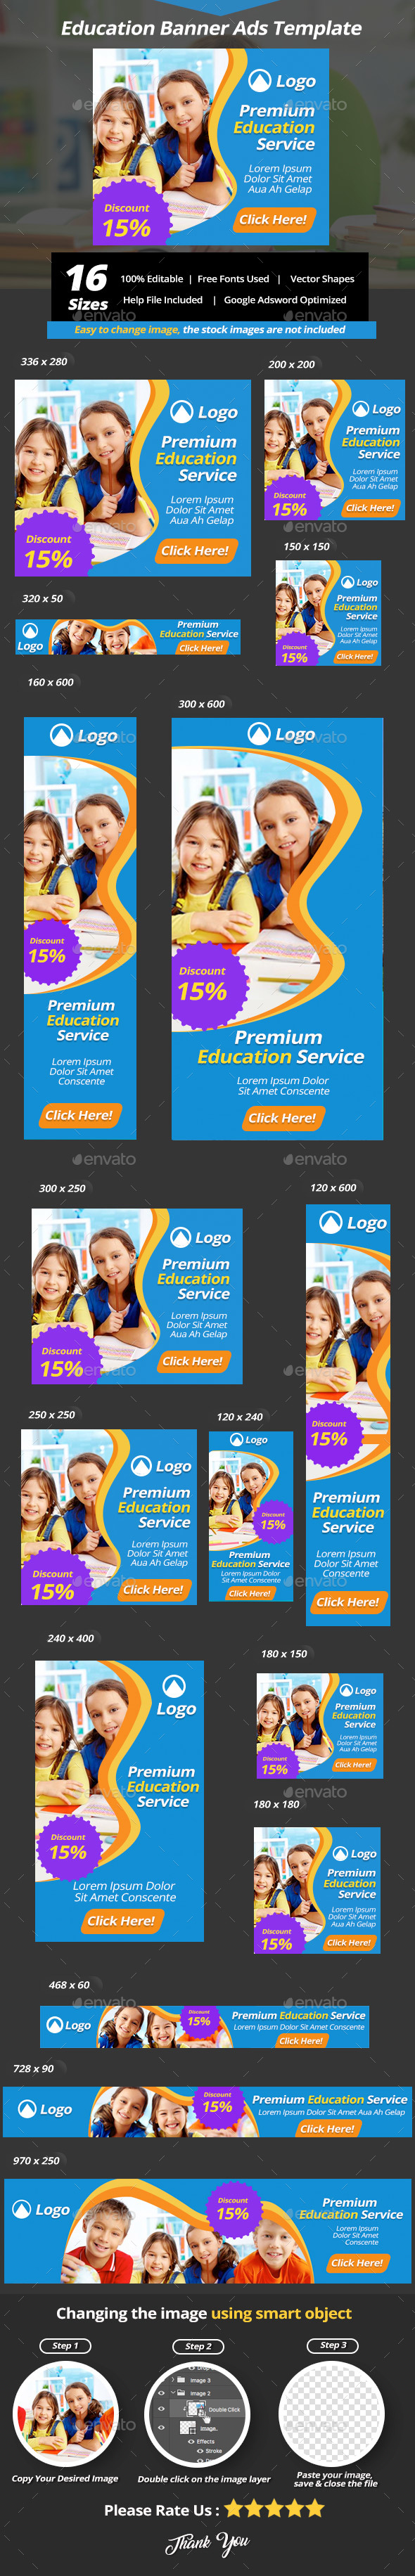 Education Banner Ads Template - Banners & Ads Web Elements